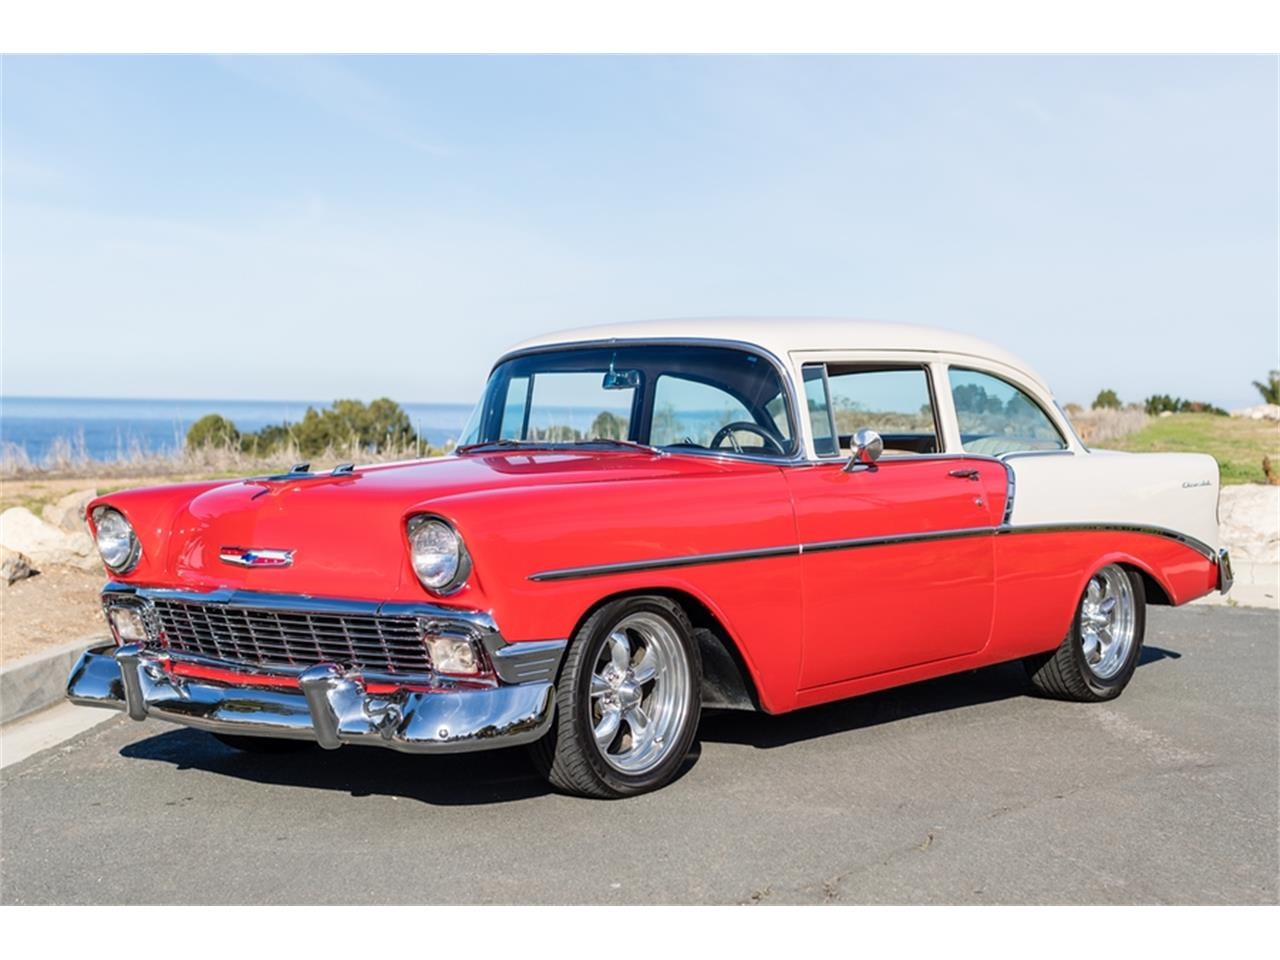 Large Picture of Classic '56 Chevrolet Bel Air - $47,000.00 Offered by a Private Seller - N6LL